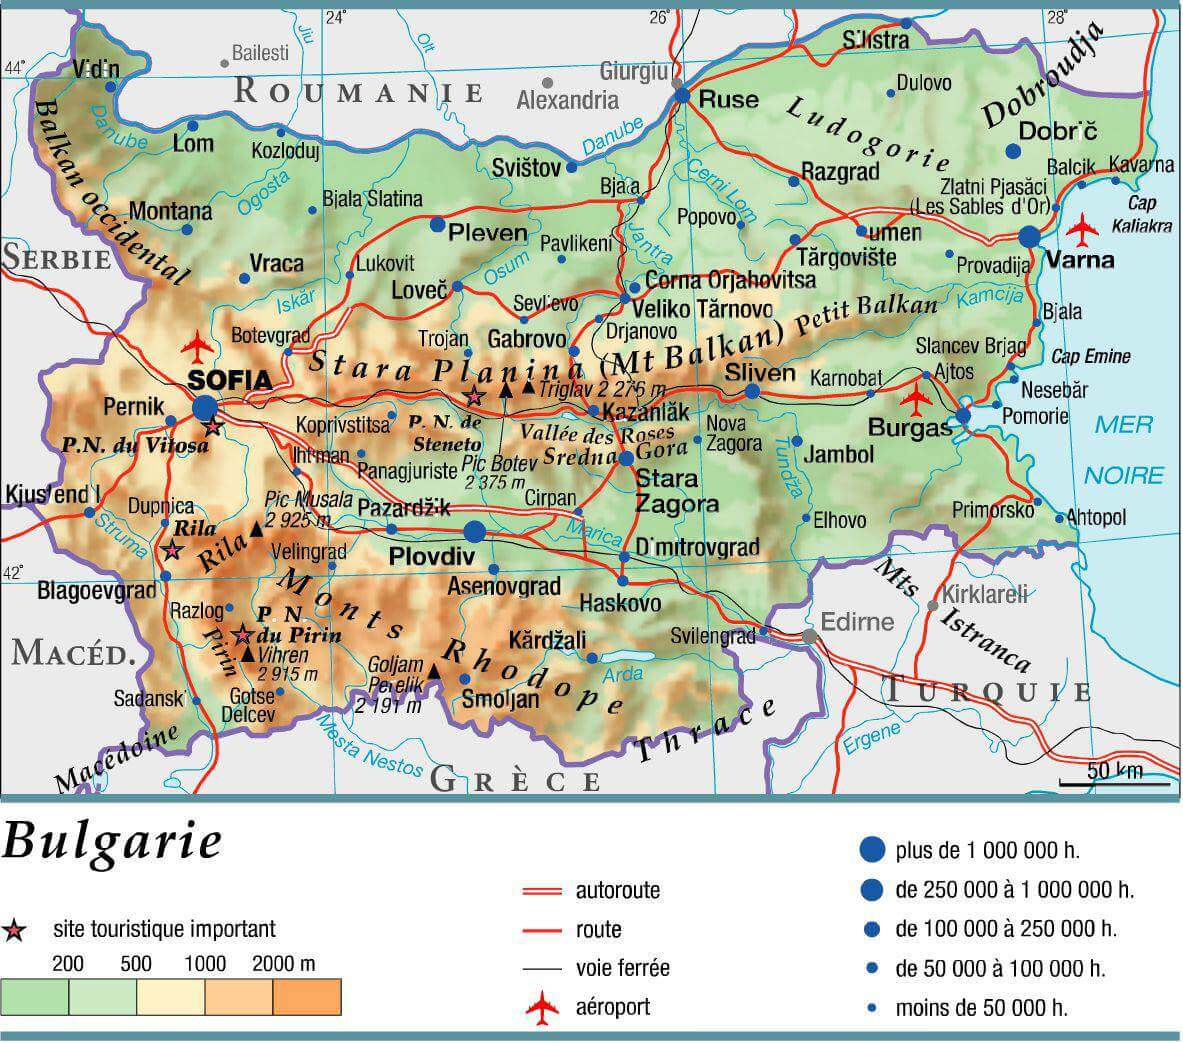 carte bulgarie routes et autoroutes